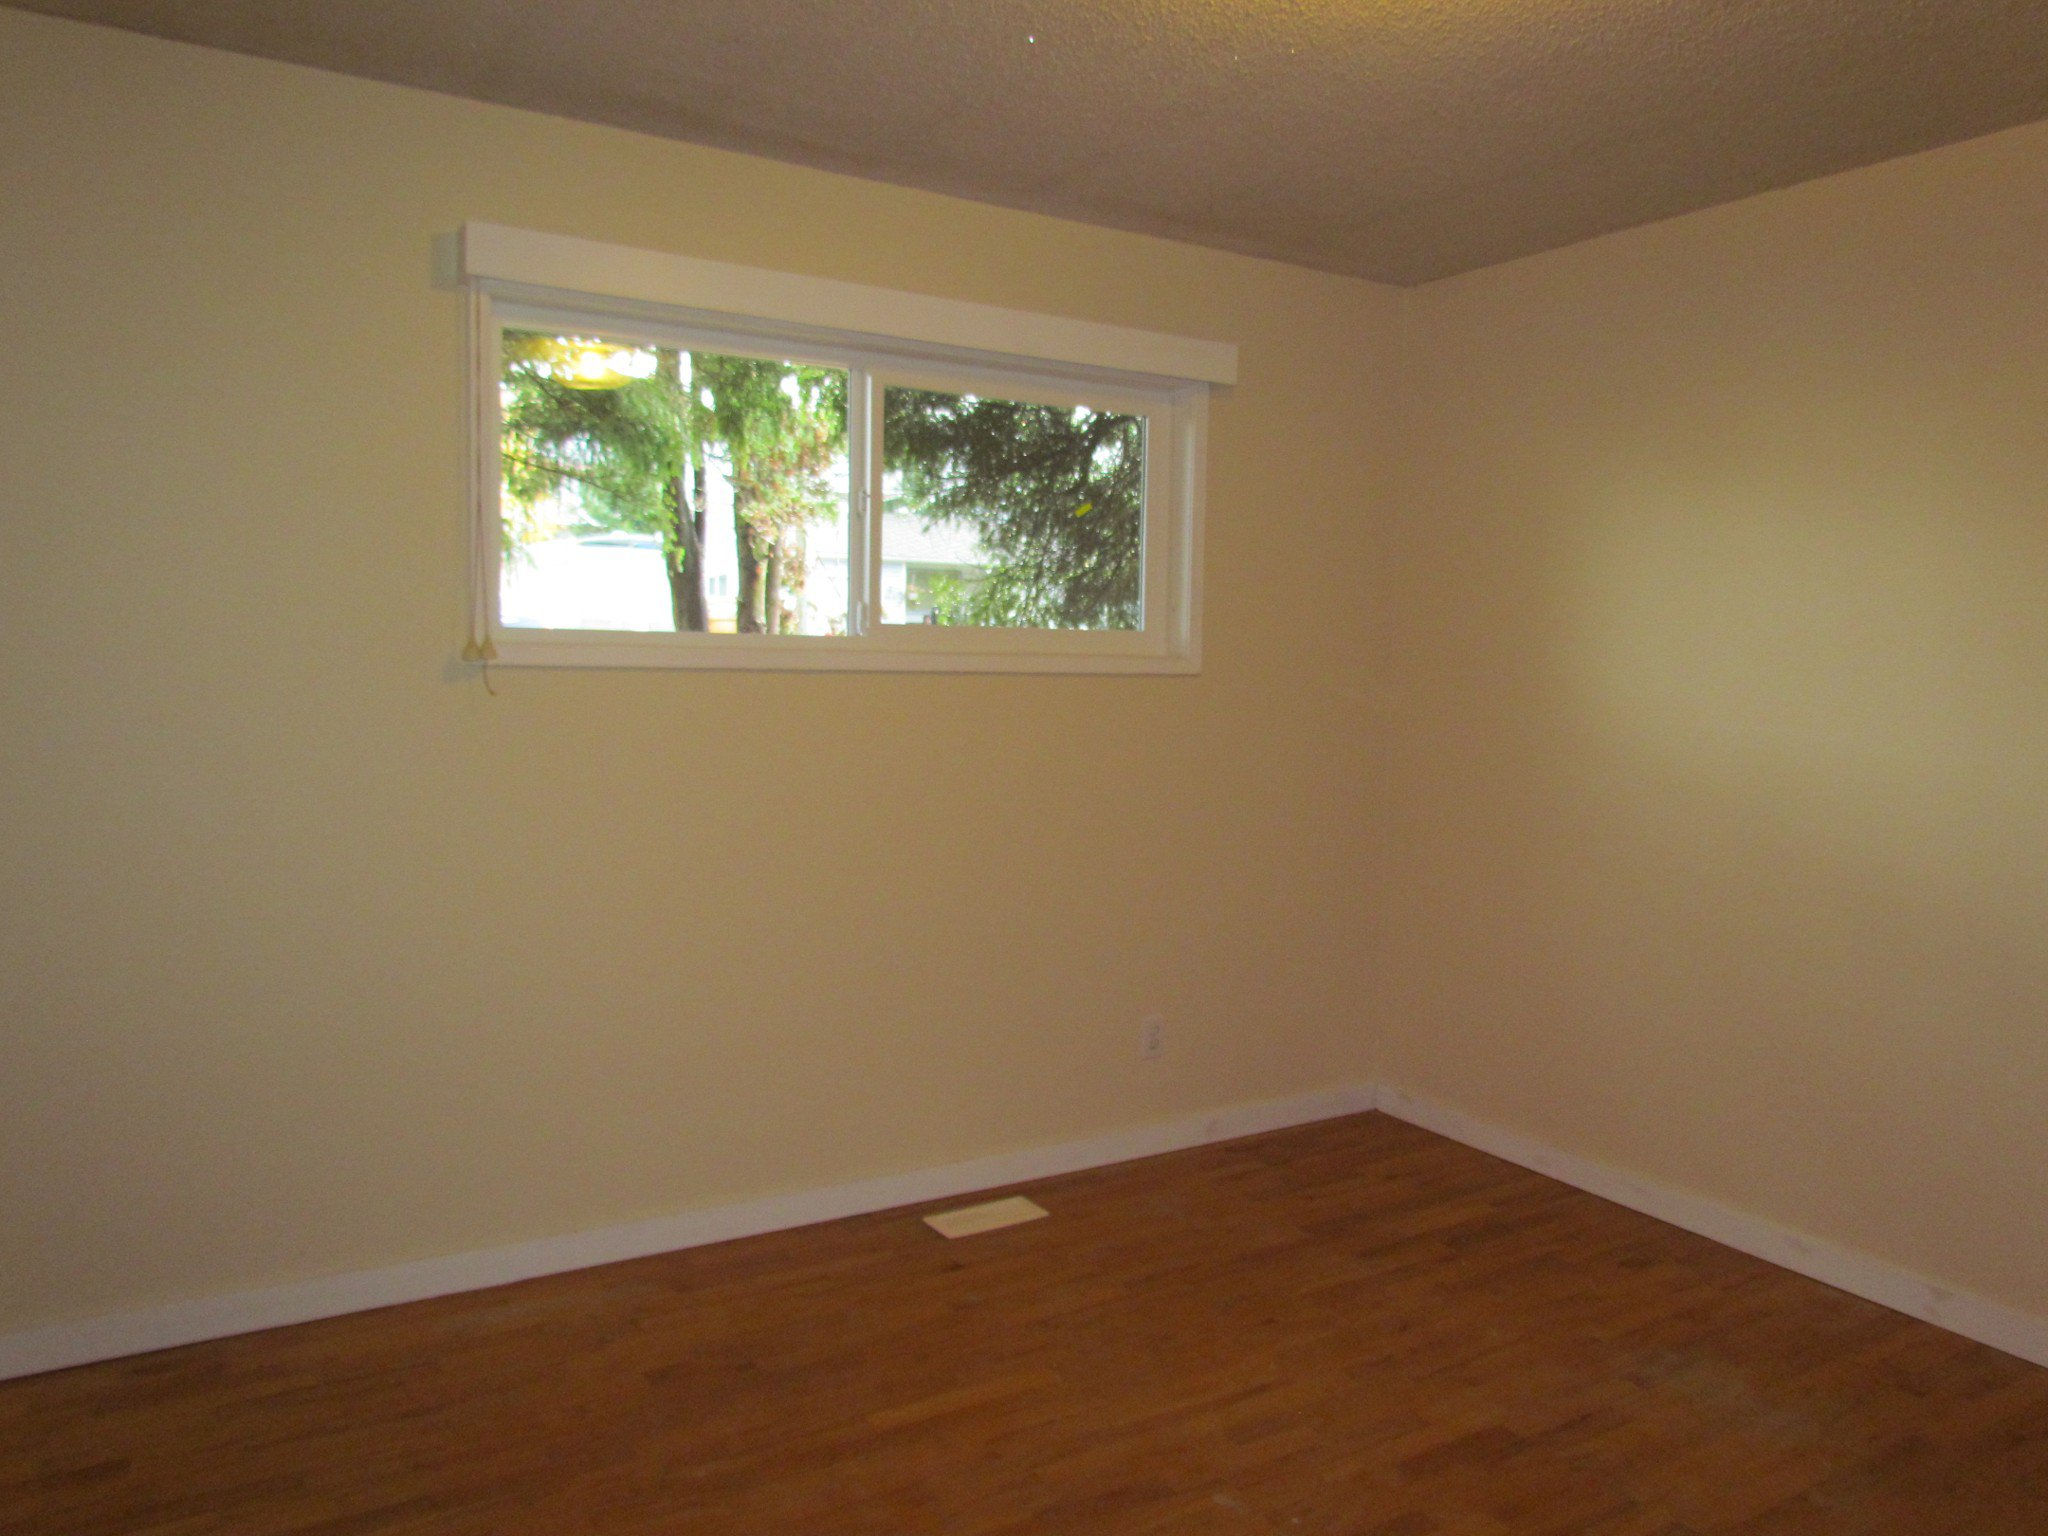 Photo 7: Photos: 1625 Kirklyn St. in Abbotsford: Central Abbotsford House for rent